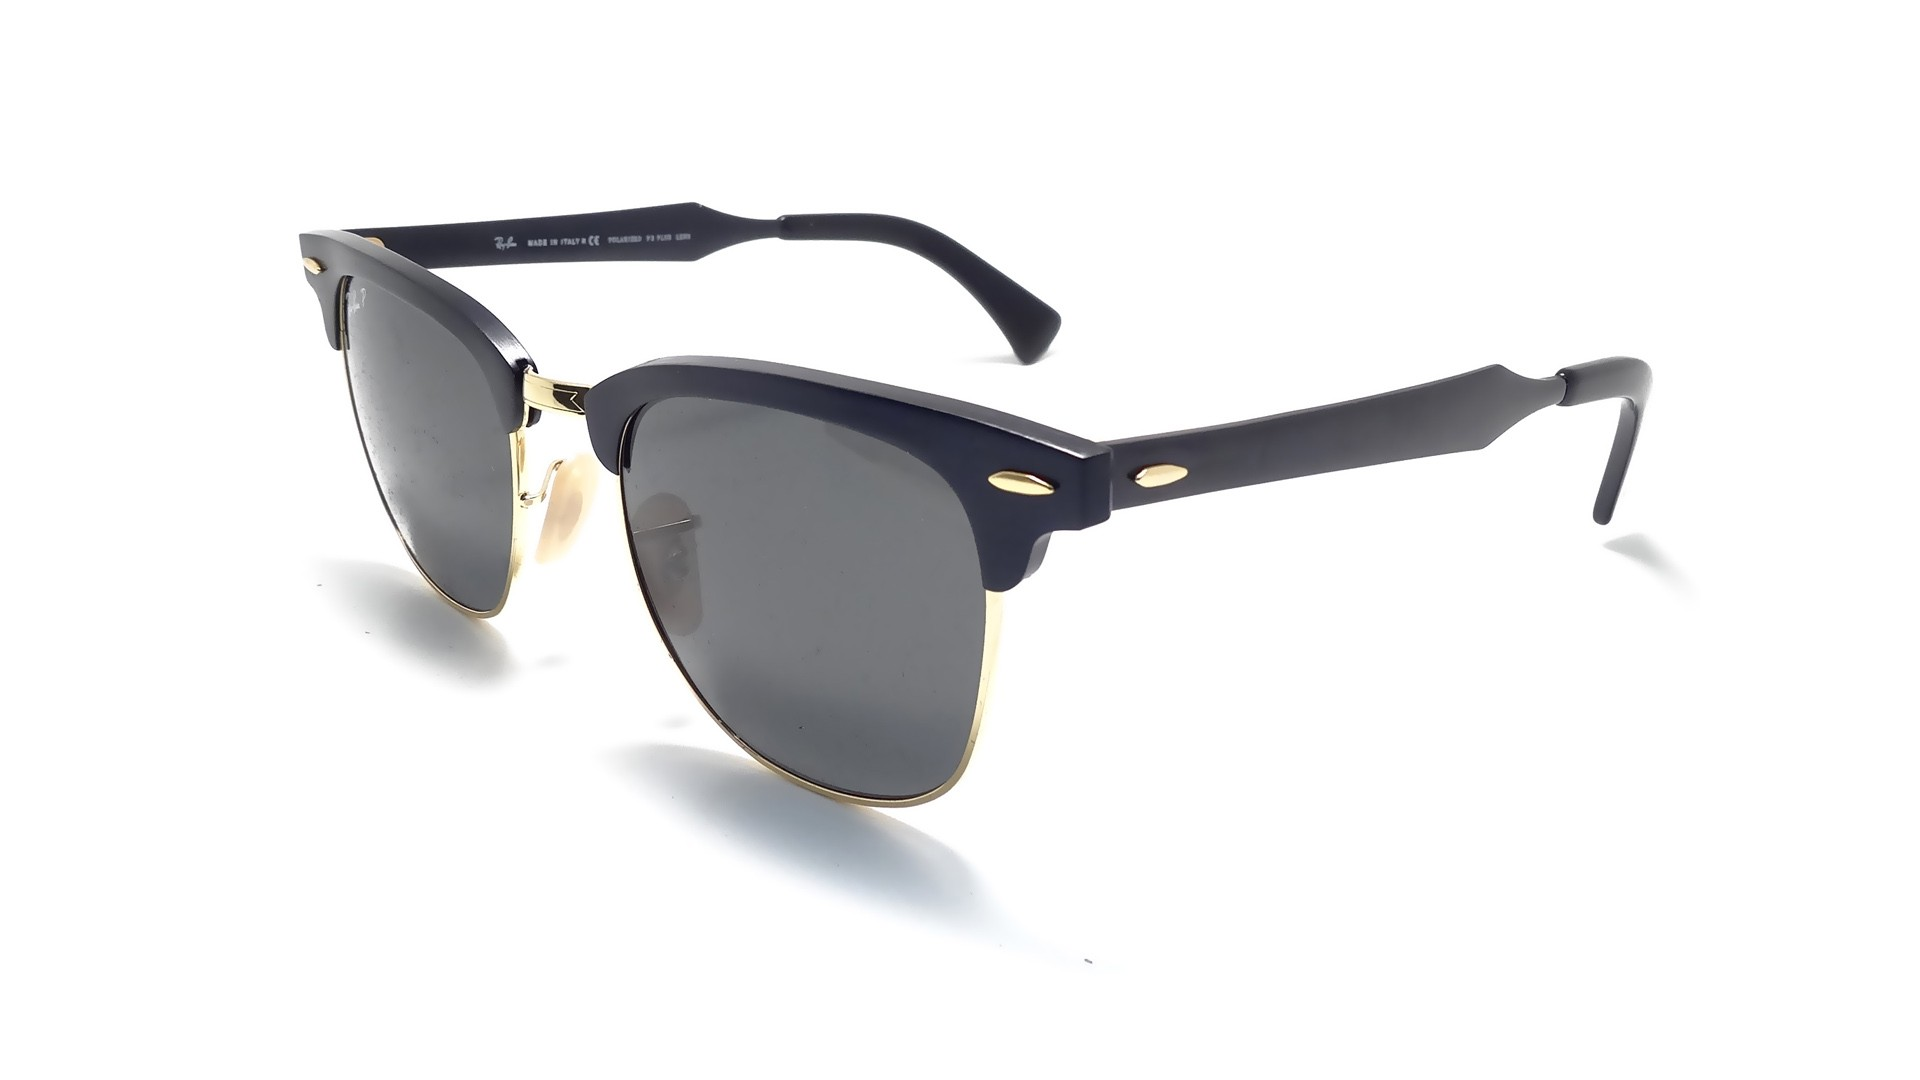 0fc686d6d7ca9 Sunglasses Ray-Ban Clubmaster Aluminium Black RB3507 136 N5 51-21 Medium  Polarized